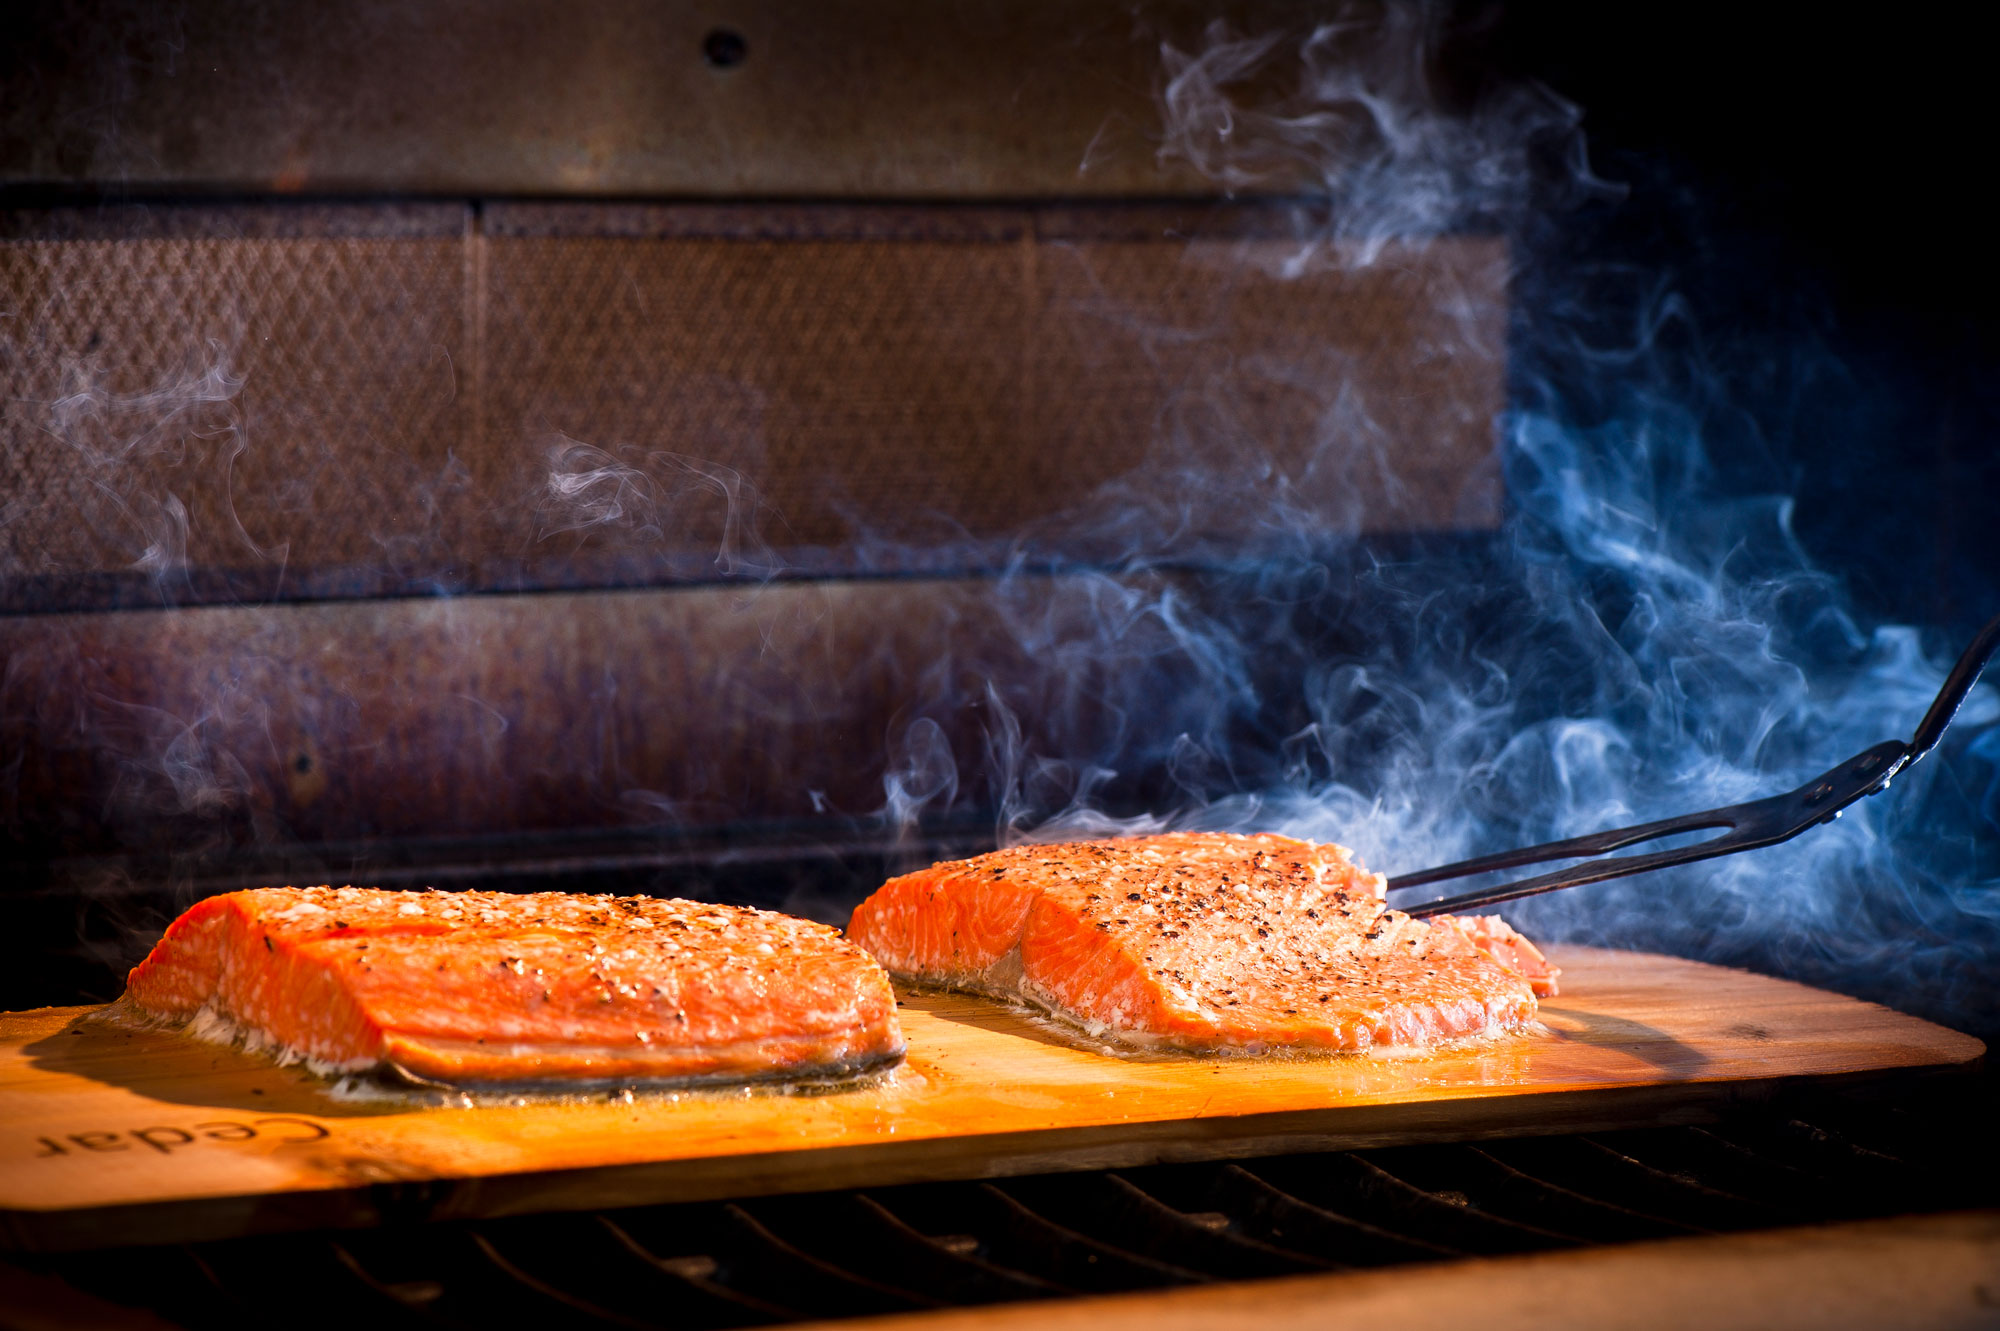 Two salmon fillets cooking on a thin, wooden plank.